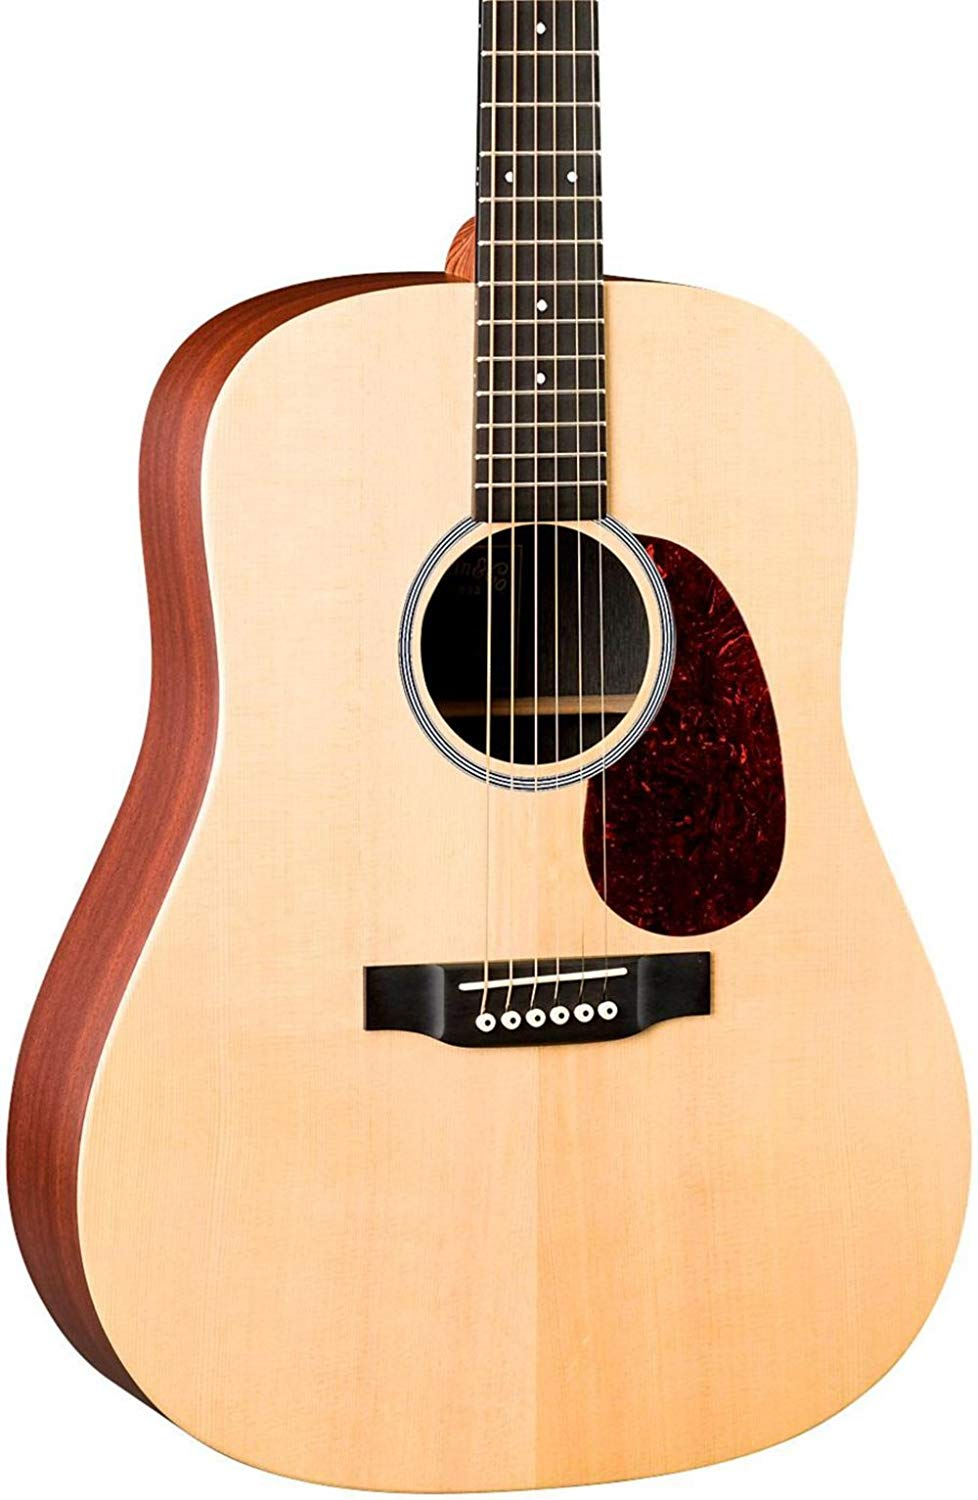 MARTIN & CO DX1AE - SOLID TOP ACOUSTIC